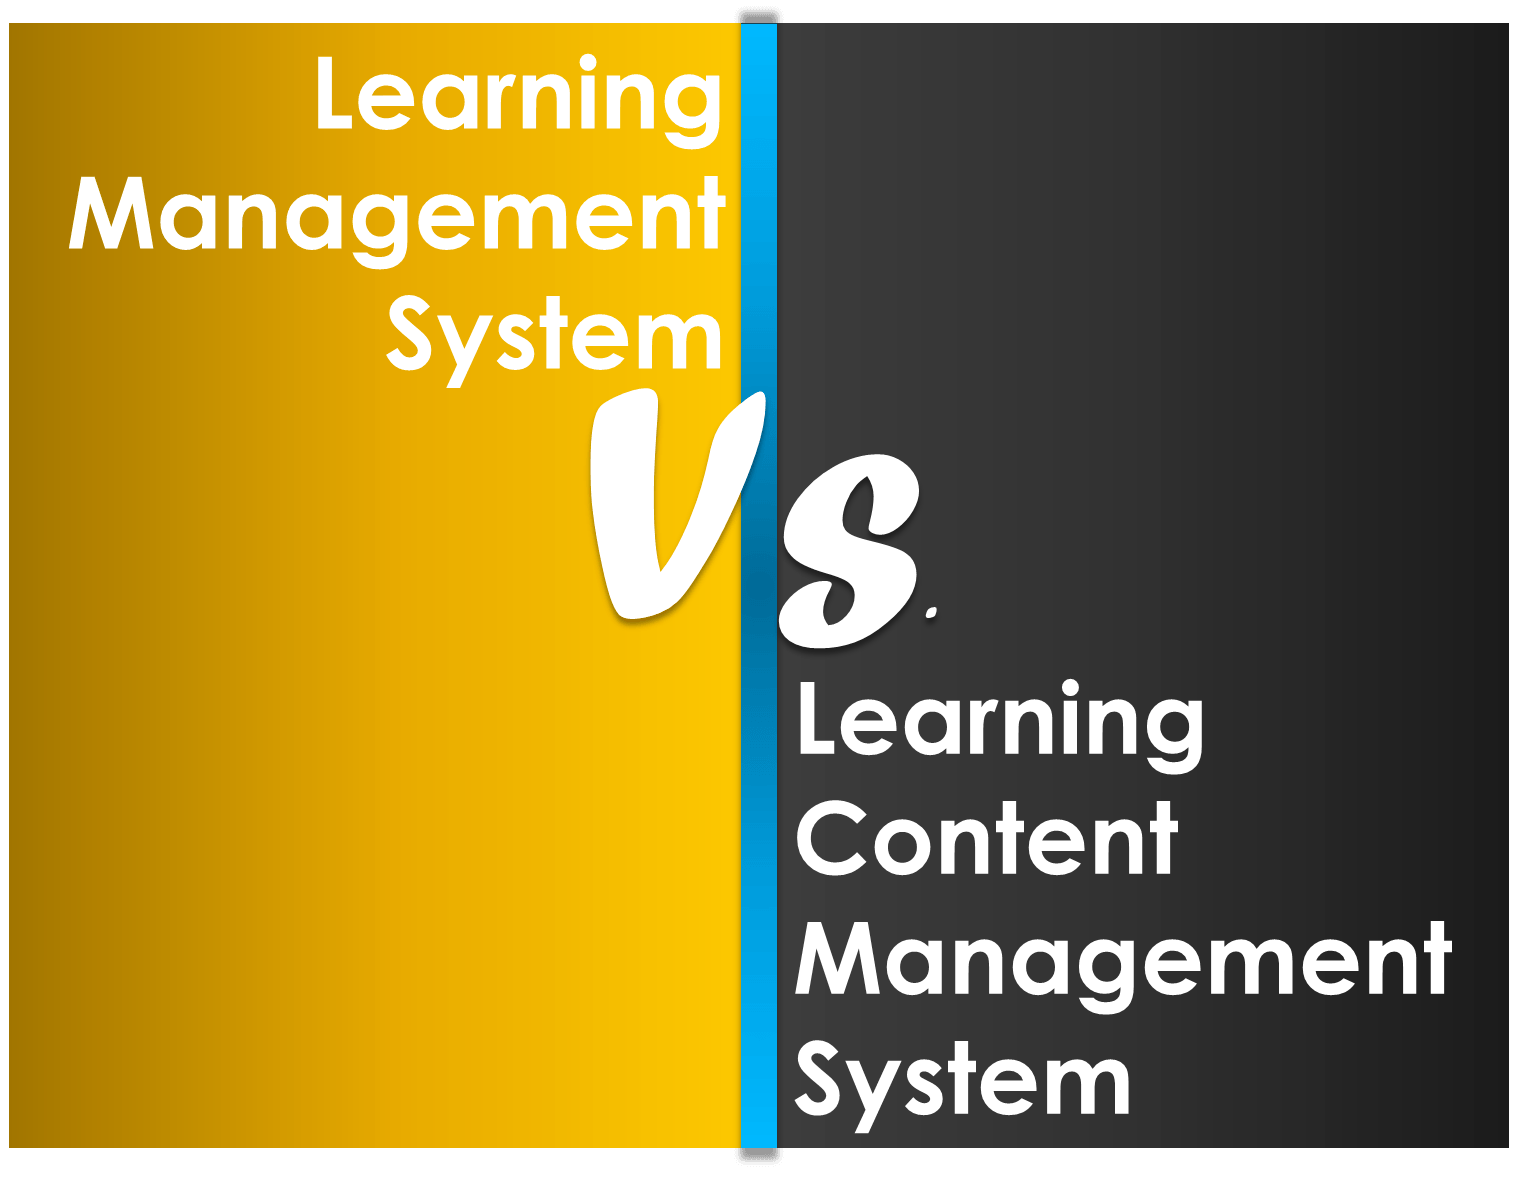 LMS vs LCMS: Learning Management System Vs Learning Content Management System